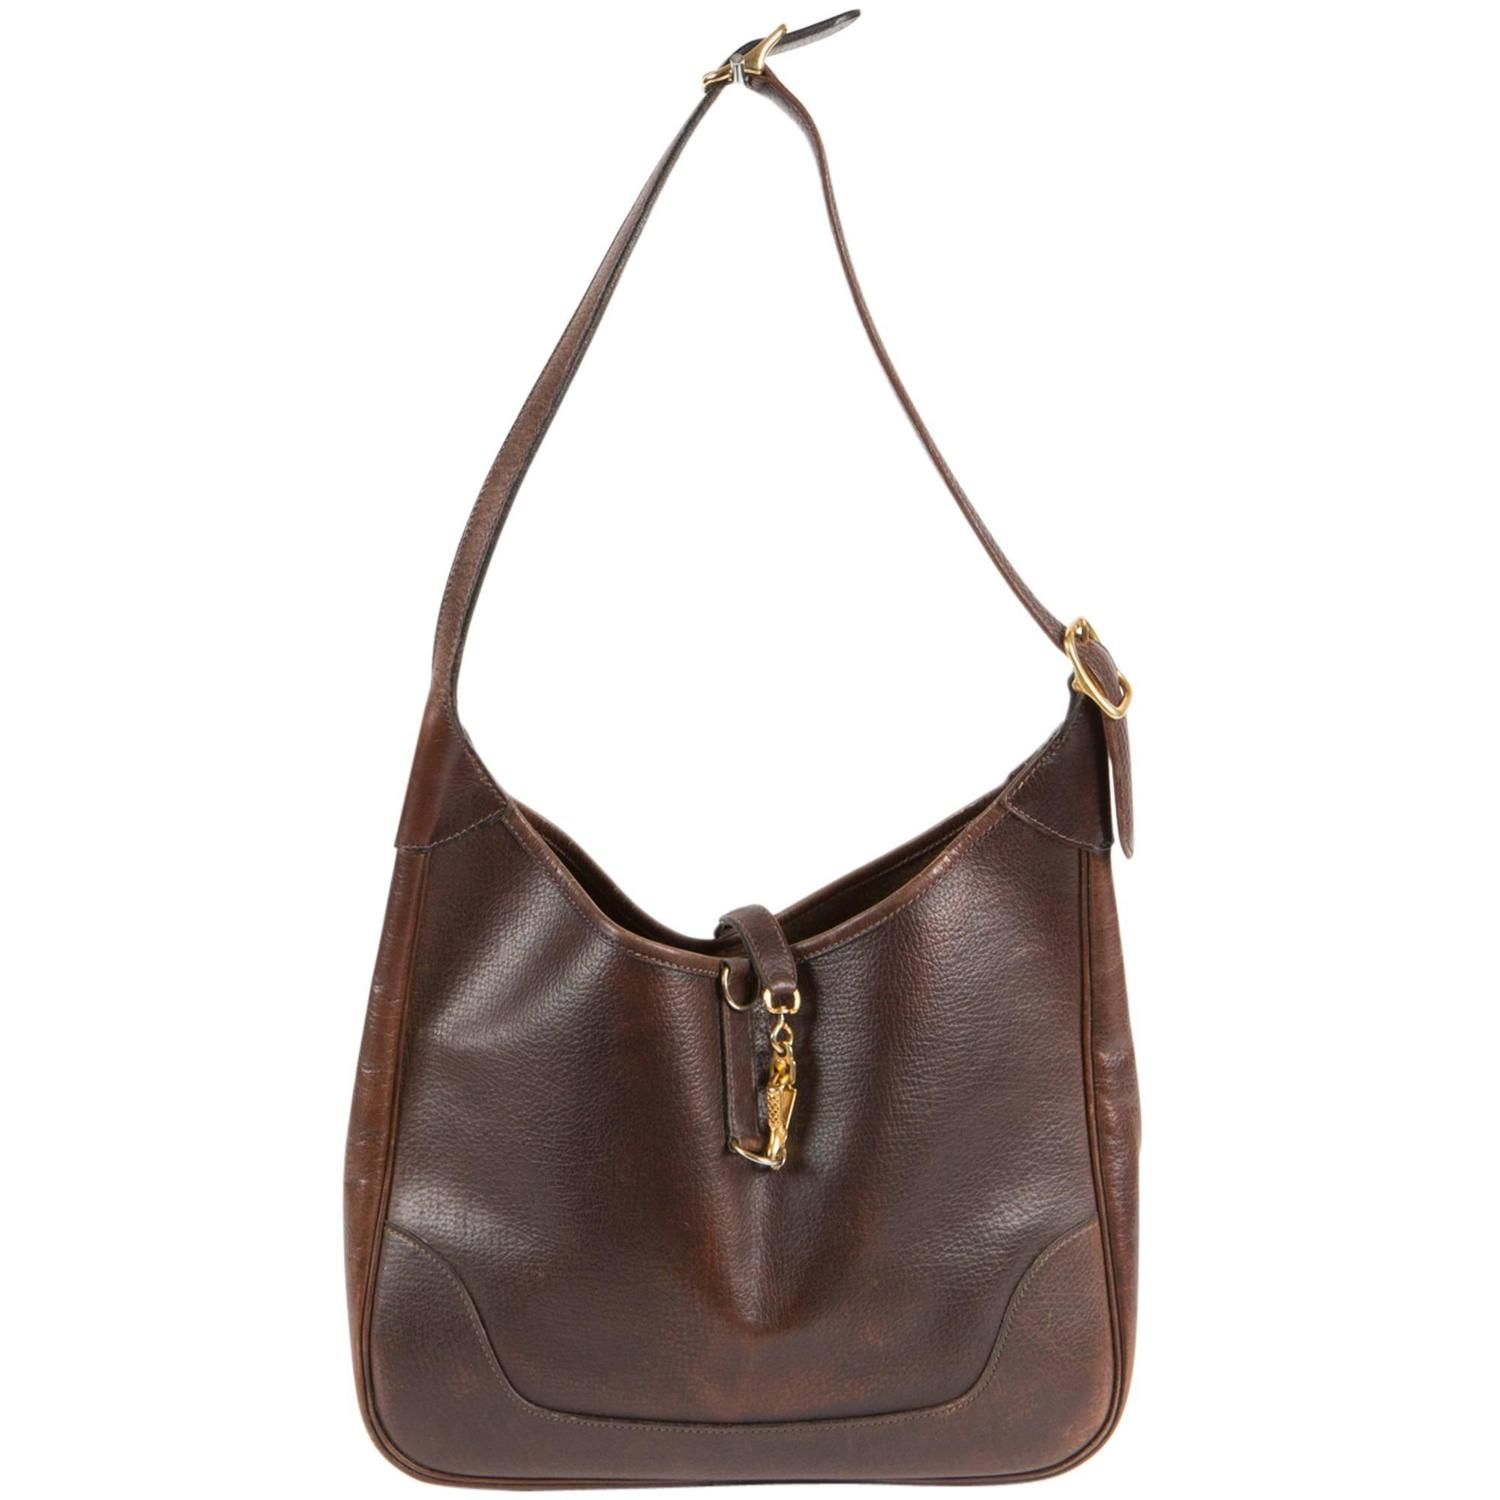 1970s Chocolate Hermes Trim Bag at 1stdibs